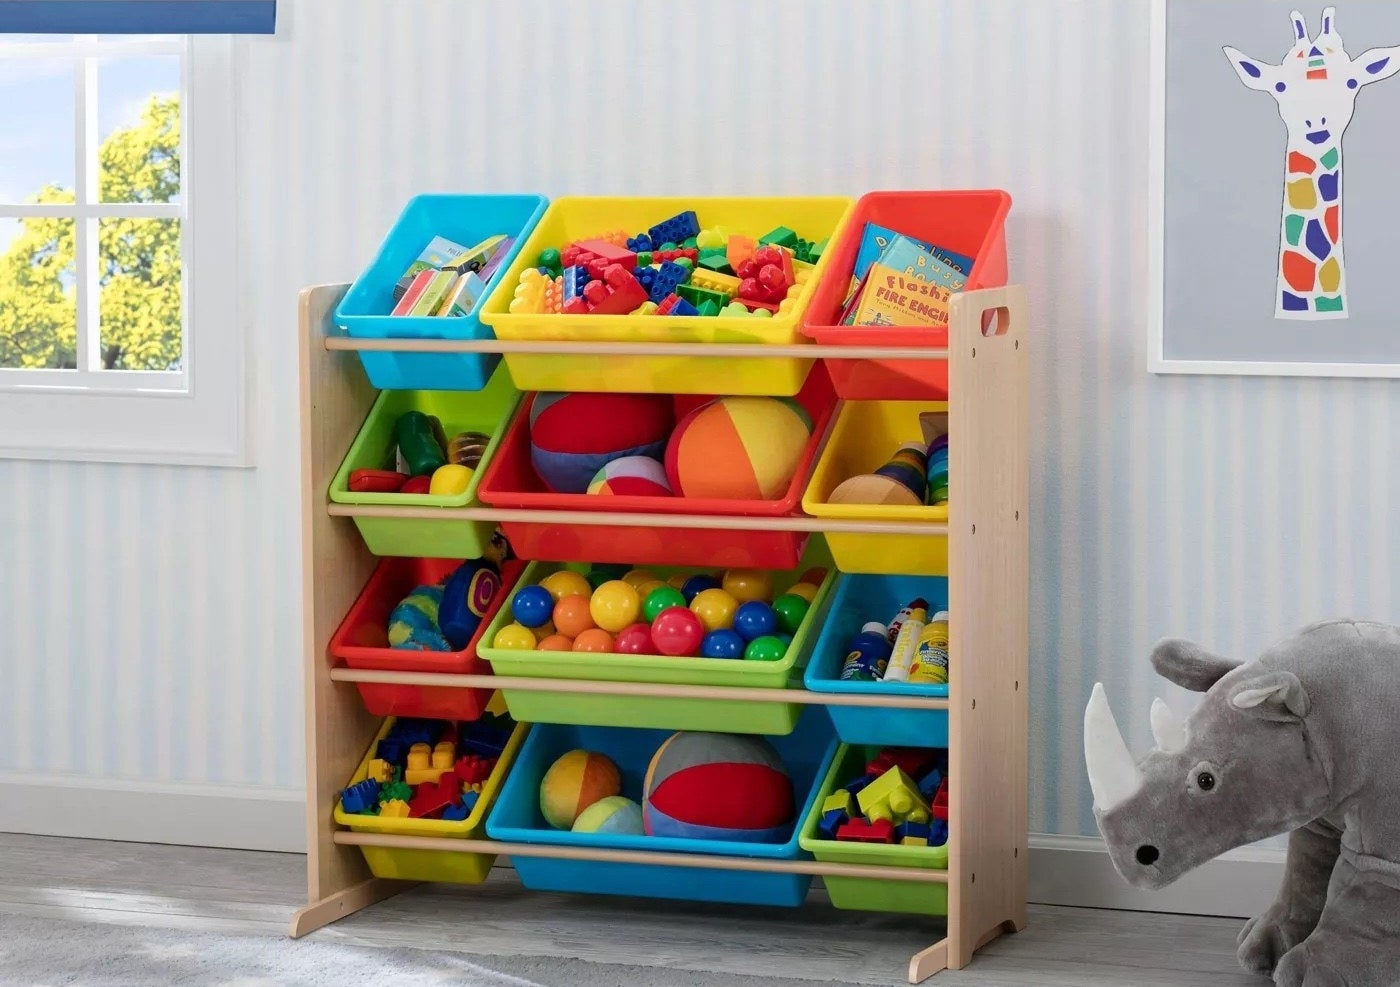 The toy storage organizer filled with assorted items